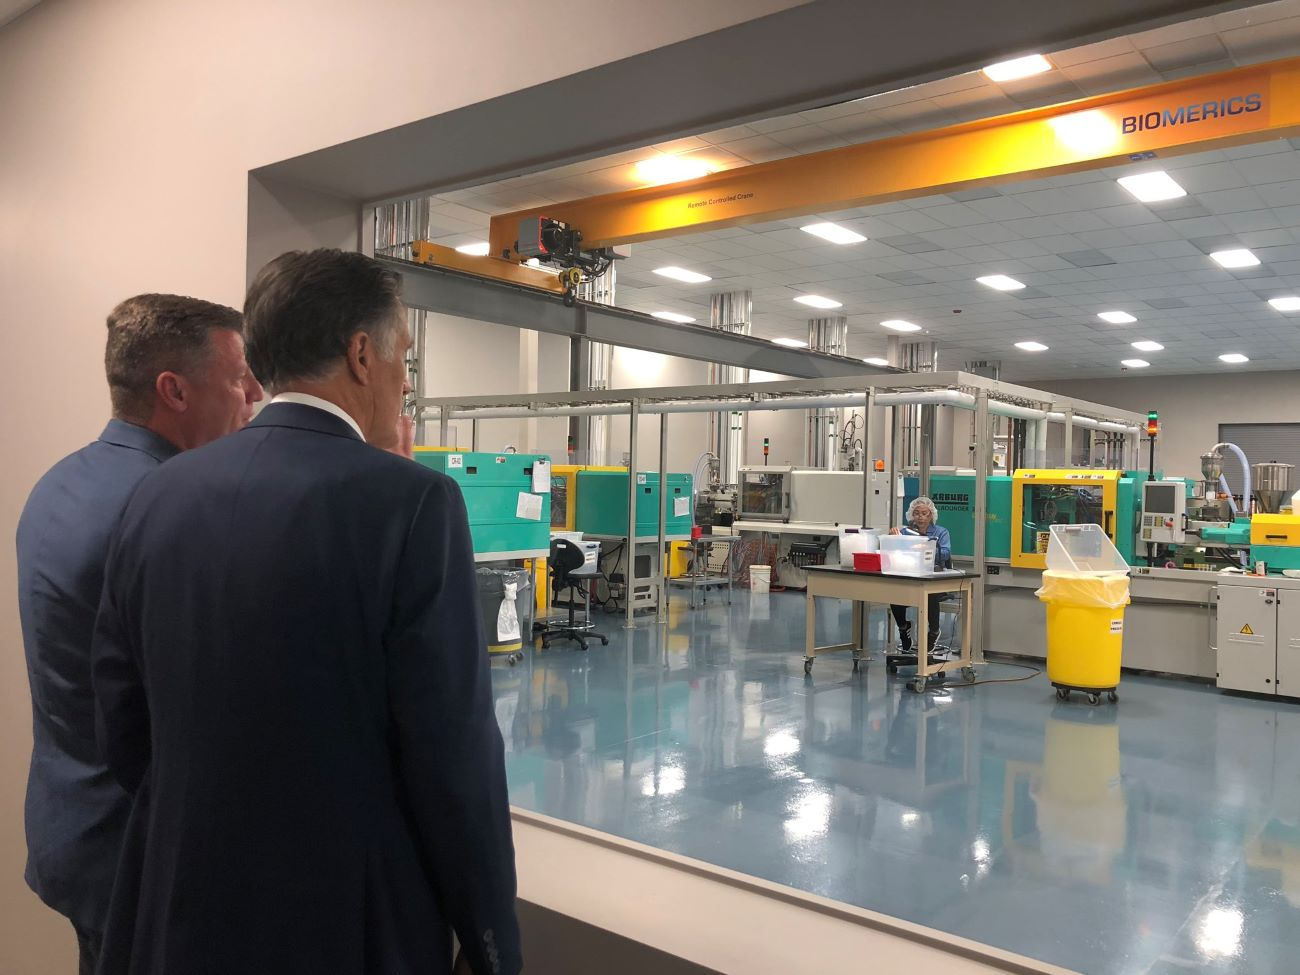 Mitt Romney on tour at Biomedical device manufacture plant